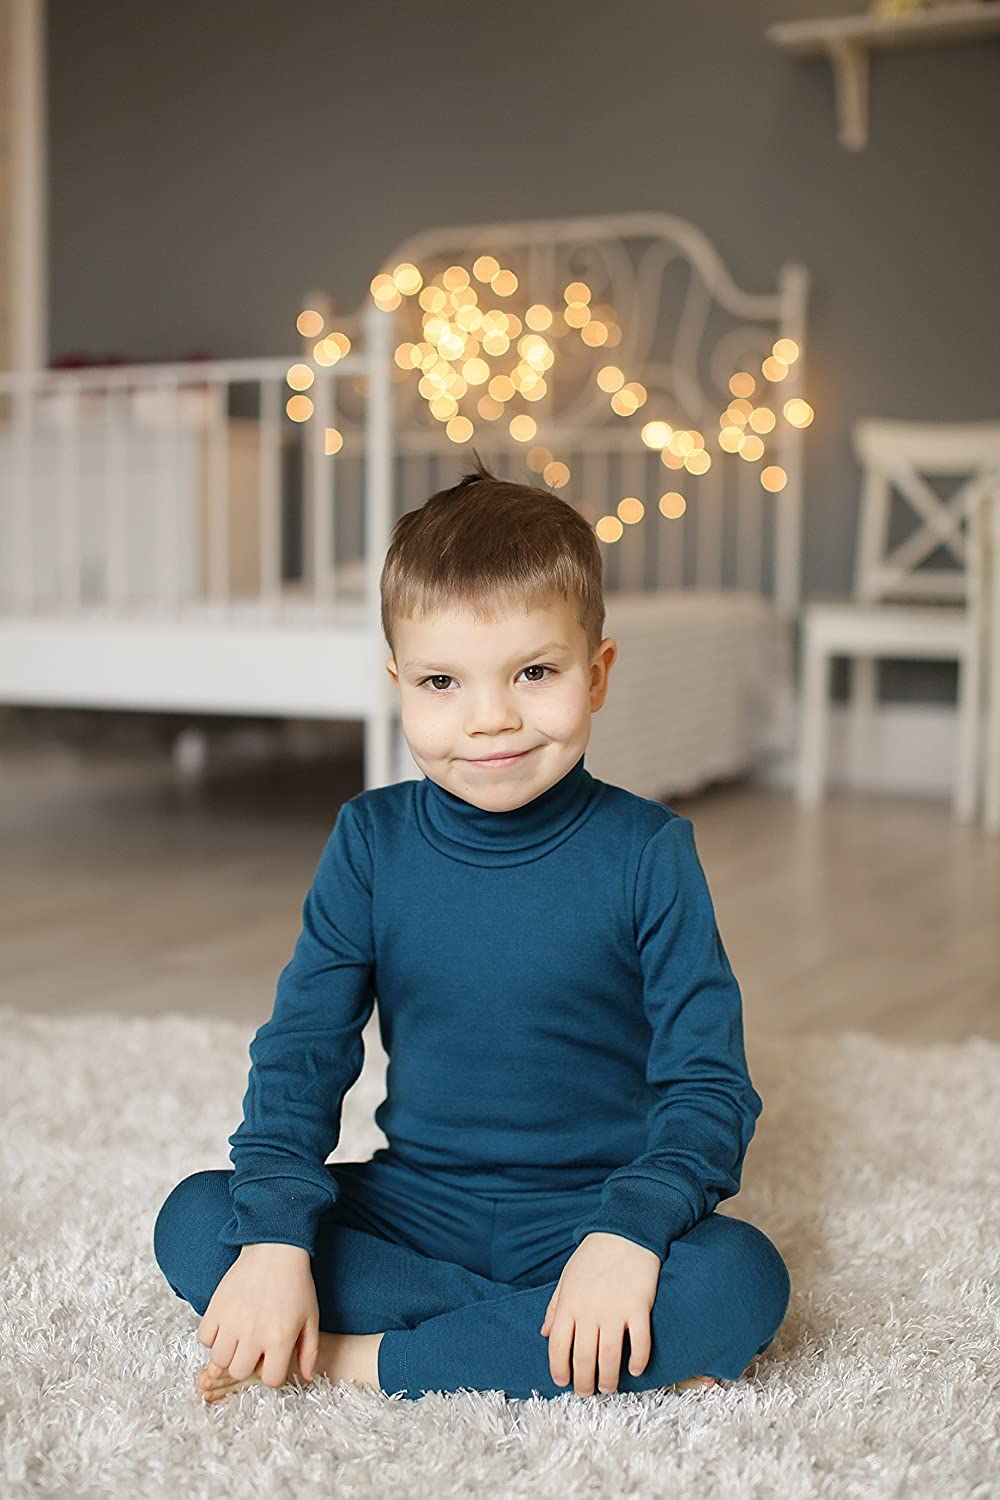 Kids Roll-Neck T-Shirts Long-Sleeved with High Neck Top Underwear Tee Shirt for Girls Boys Unisex 3 Month 12 Years 100/% Merino Wool